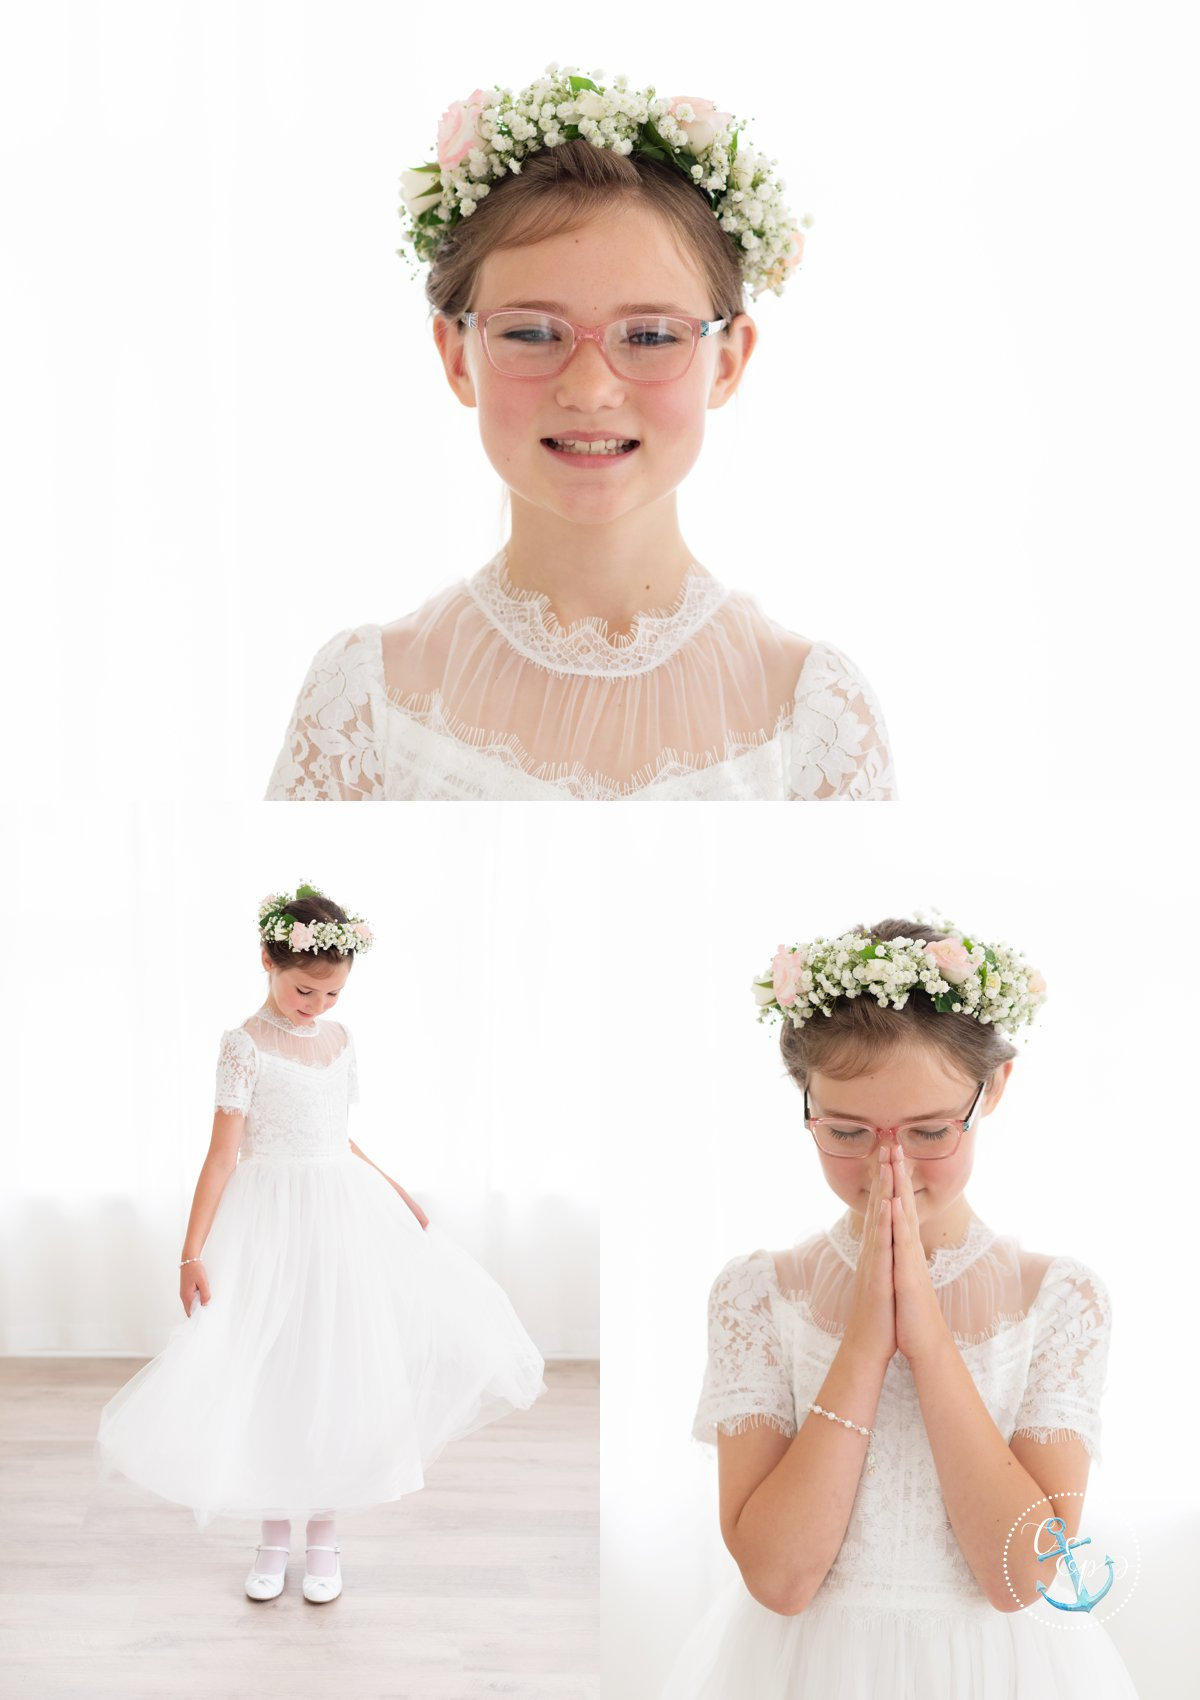 First Communion girl portraits in Frederick Maryland. Girl is wearing a white dress, has a flower crown, and is against a backlit white background. Copyright Cristina Elisa Photography LLC